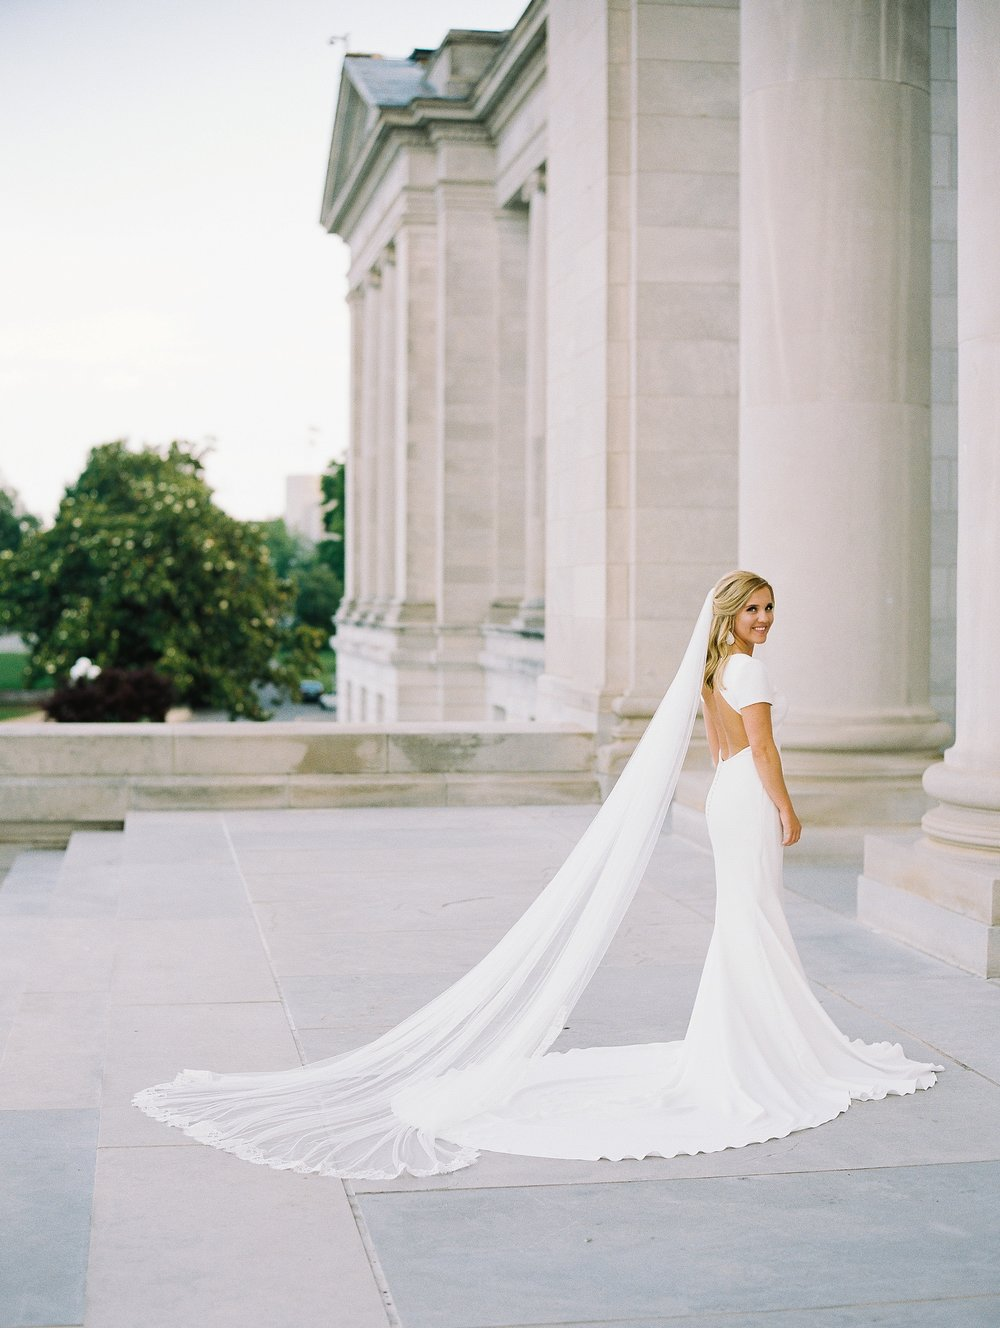 Arkansas Capitol Building Bridals Wedding Photographer_0114.jpg